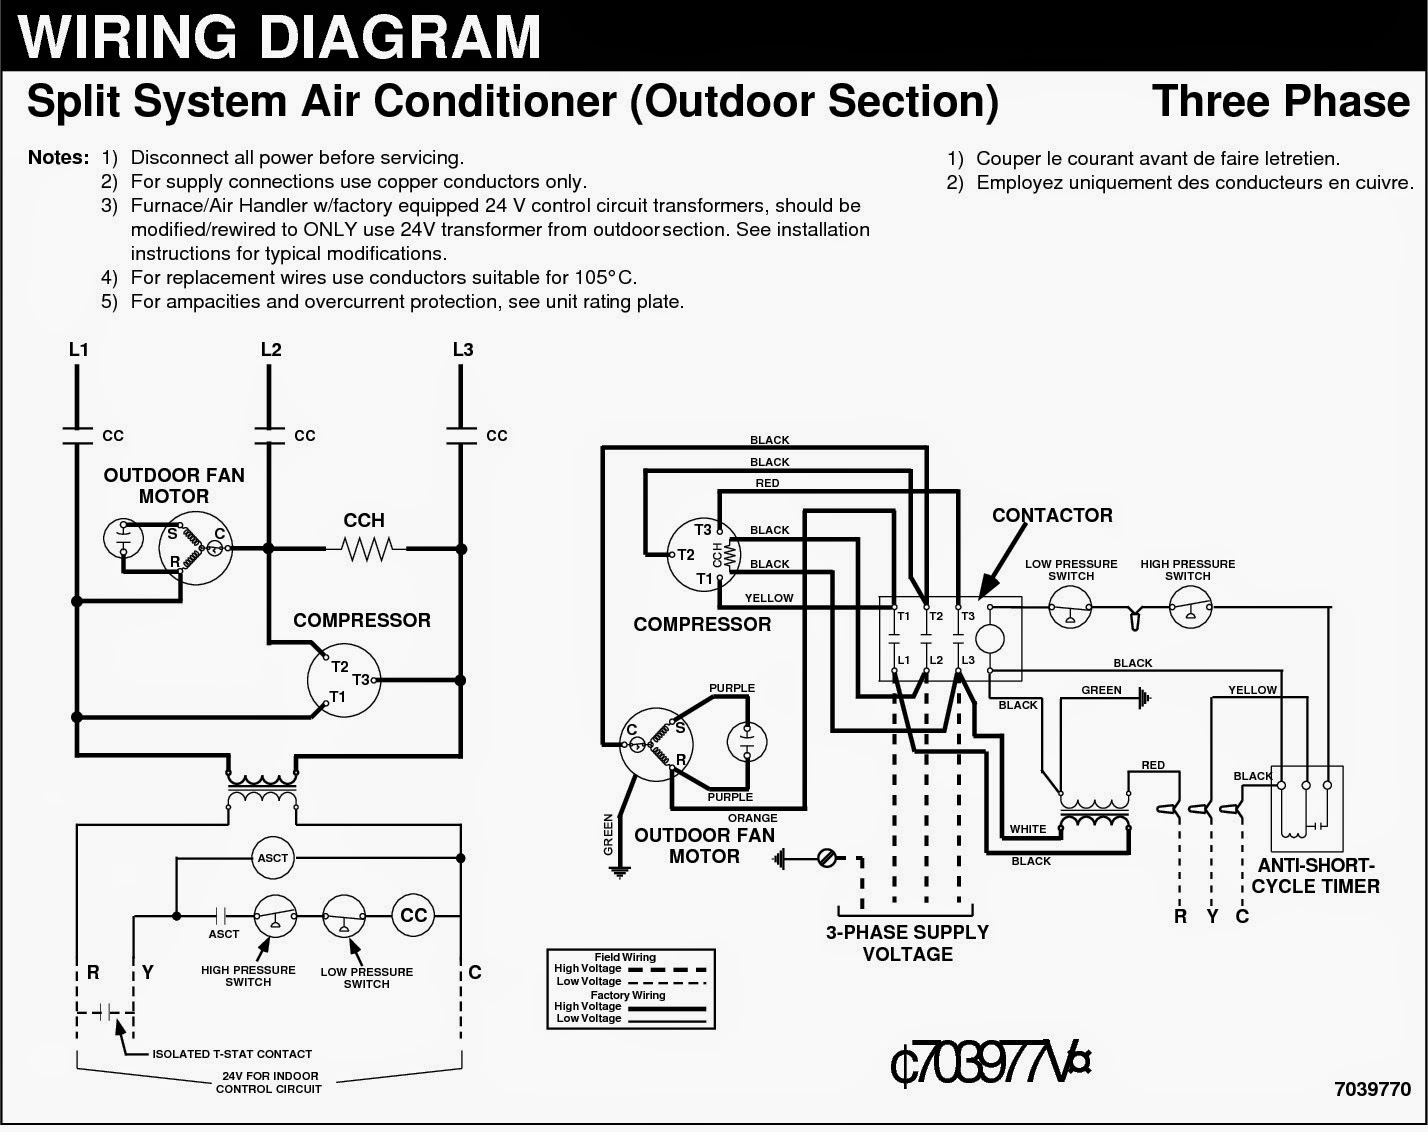 3+phase electrical wiring diagrams for air conditioning systems part two single phase wiring diagram at gsmportal.co